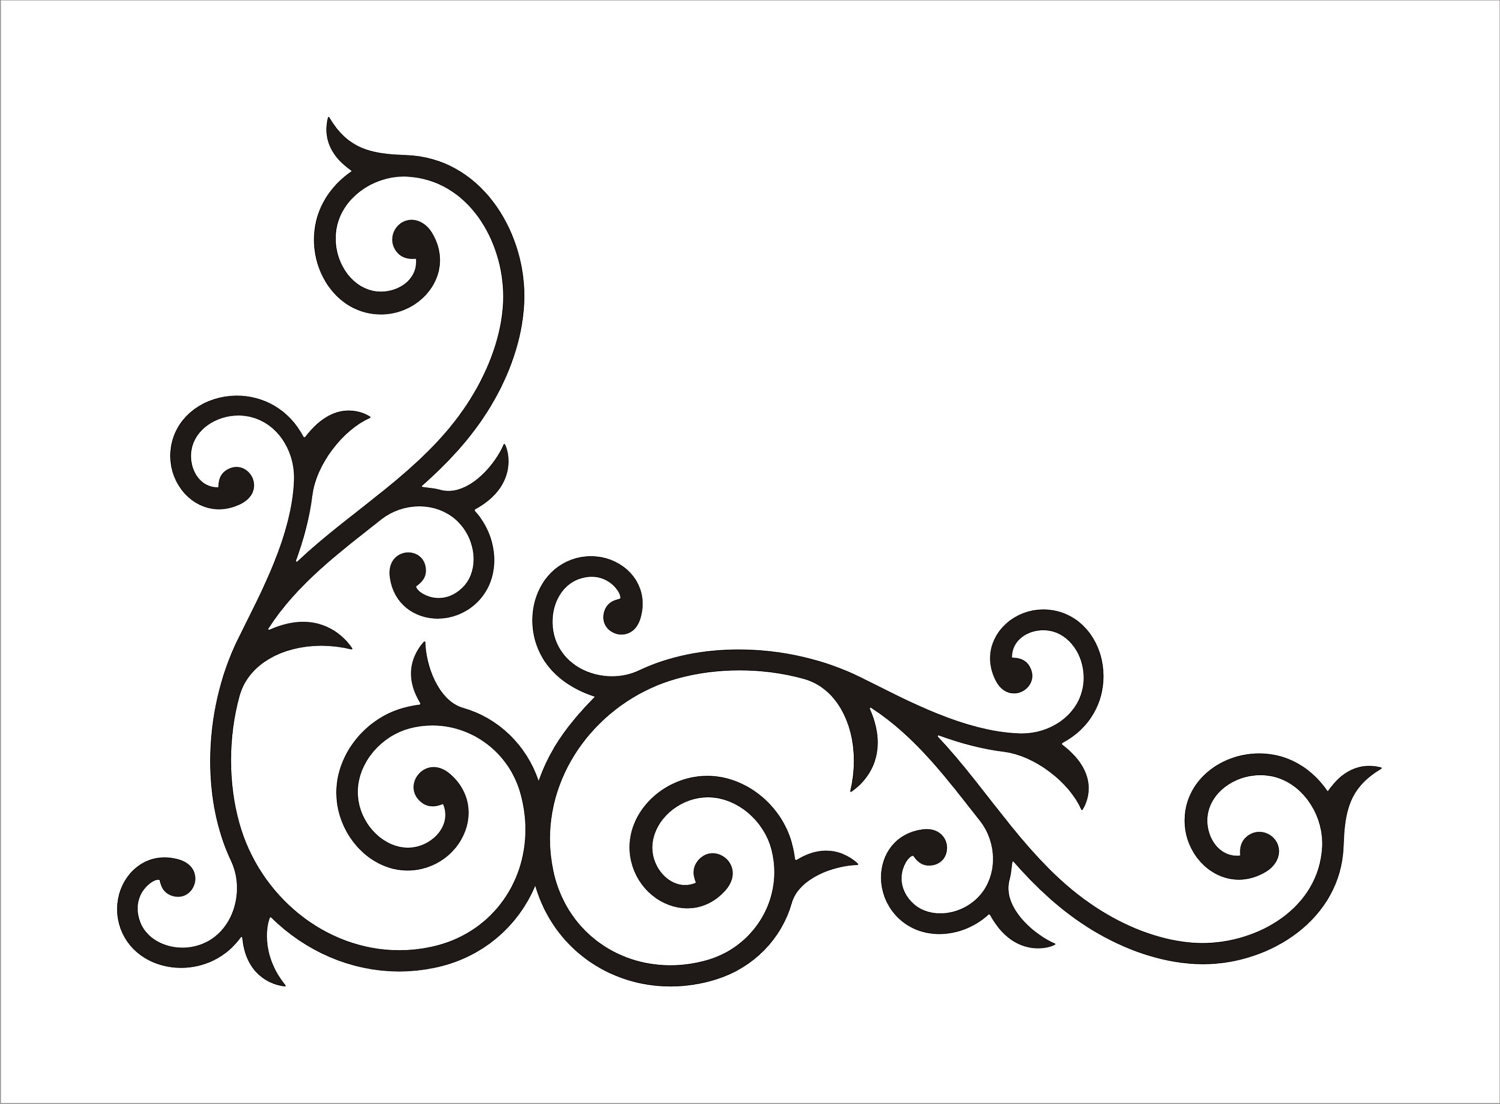 Swirly line borders clipart banner black and white Free Swirly Images, Download Free Clip Art, Free Clip Art on ... banner black and white